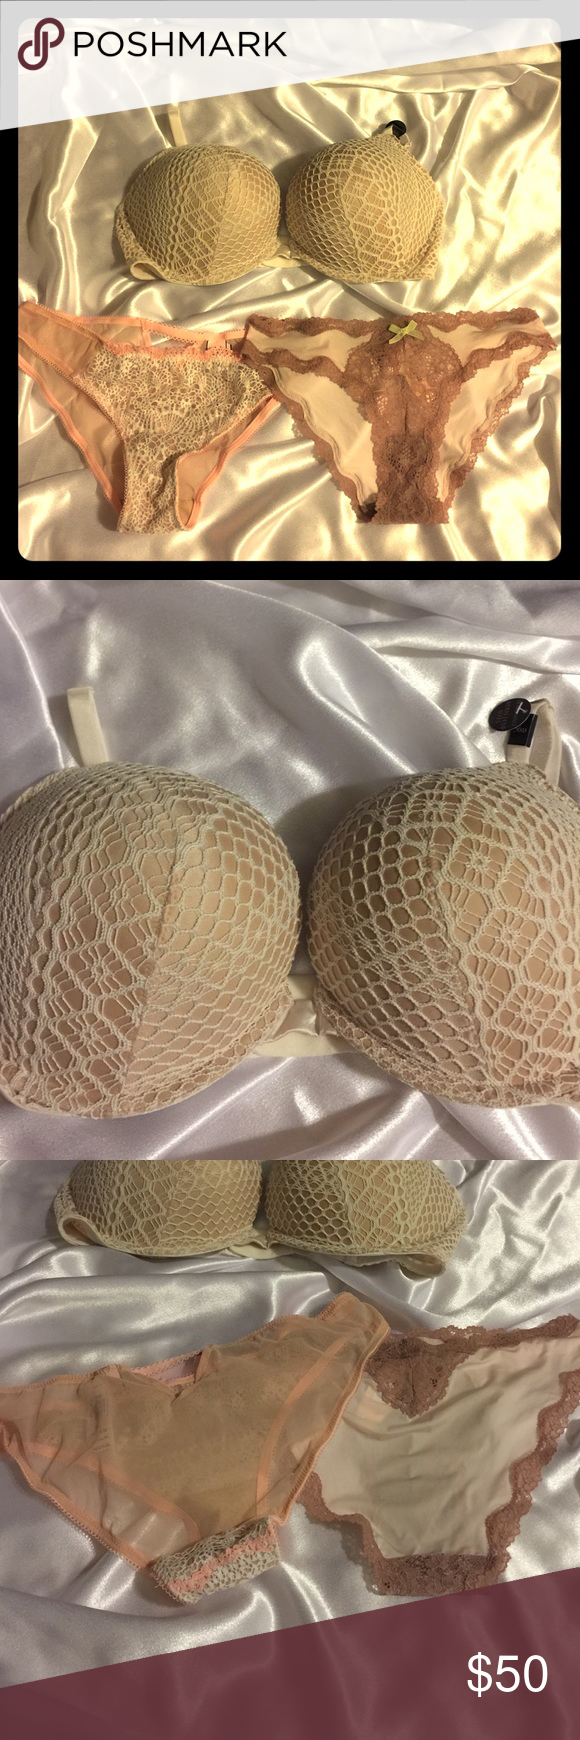 3 PC Fishnet White Bra 36D & 2 panties lace peach Beautiful 3 Piece Set - panties are size small Victoria's Secret Intimates & Sleepwear Bras